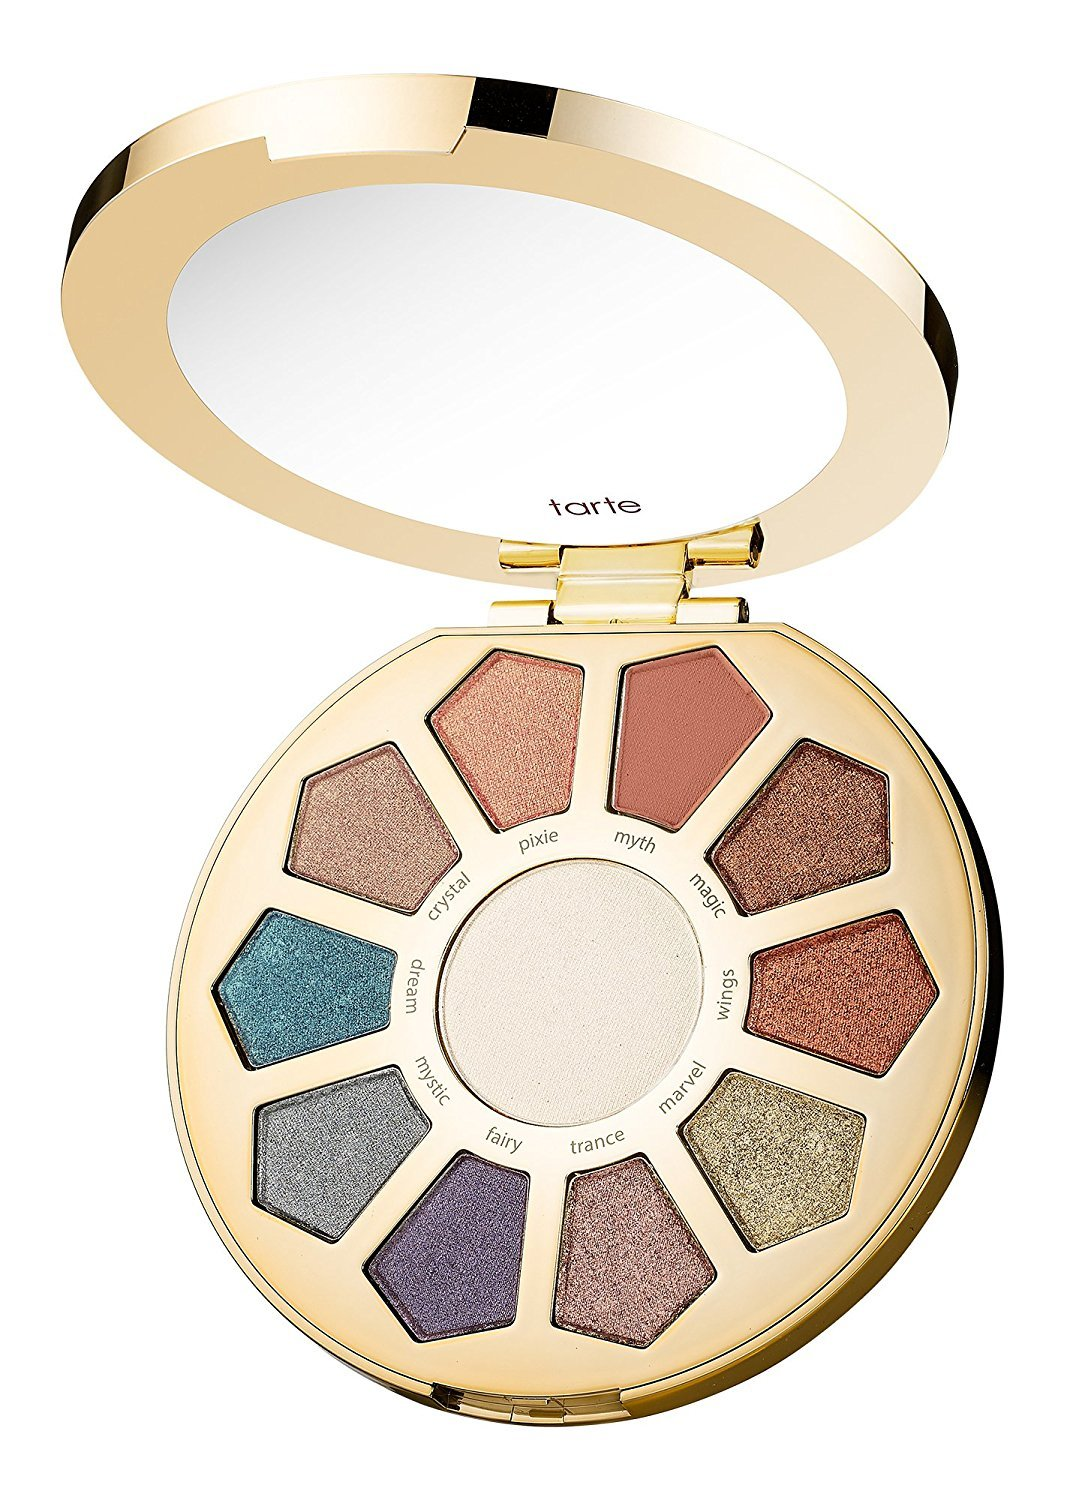 Tarte Make Believe In Yourself Eye & Cheek Palette with 10 Eyeshadows & Highlighter